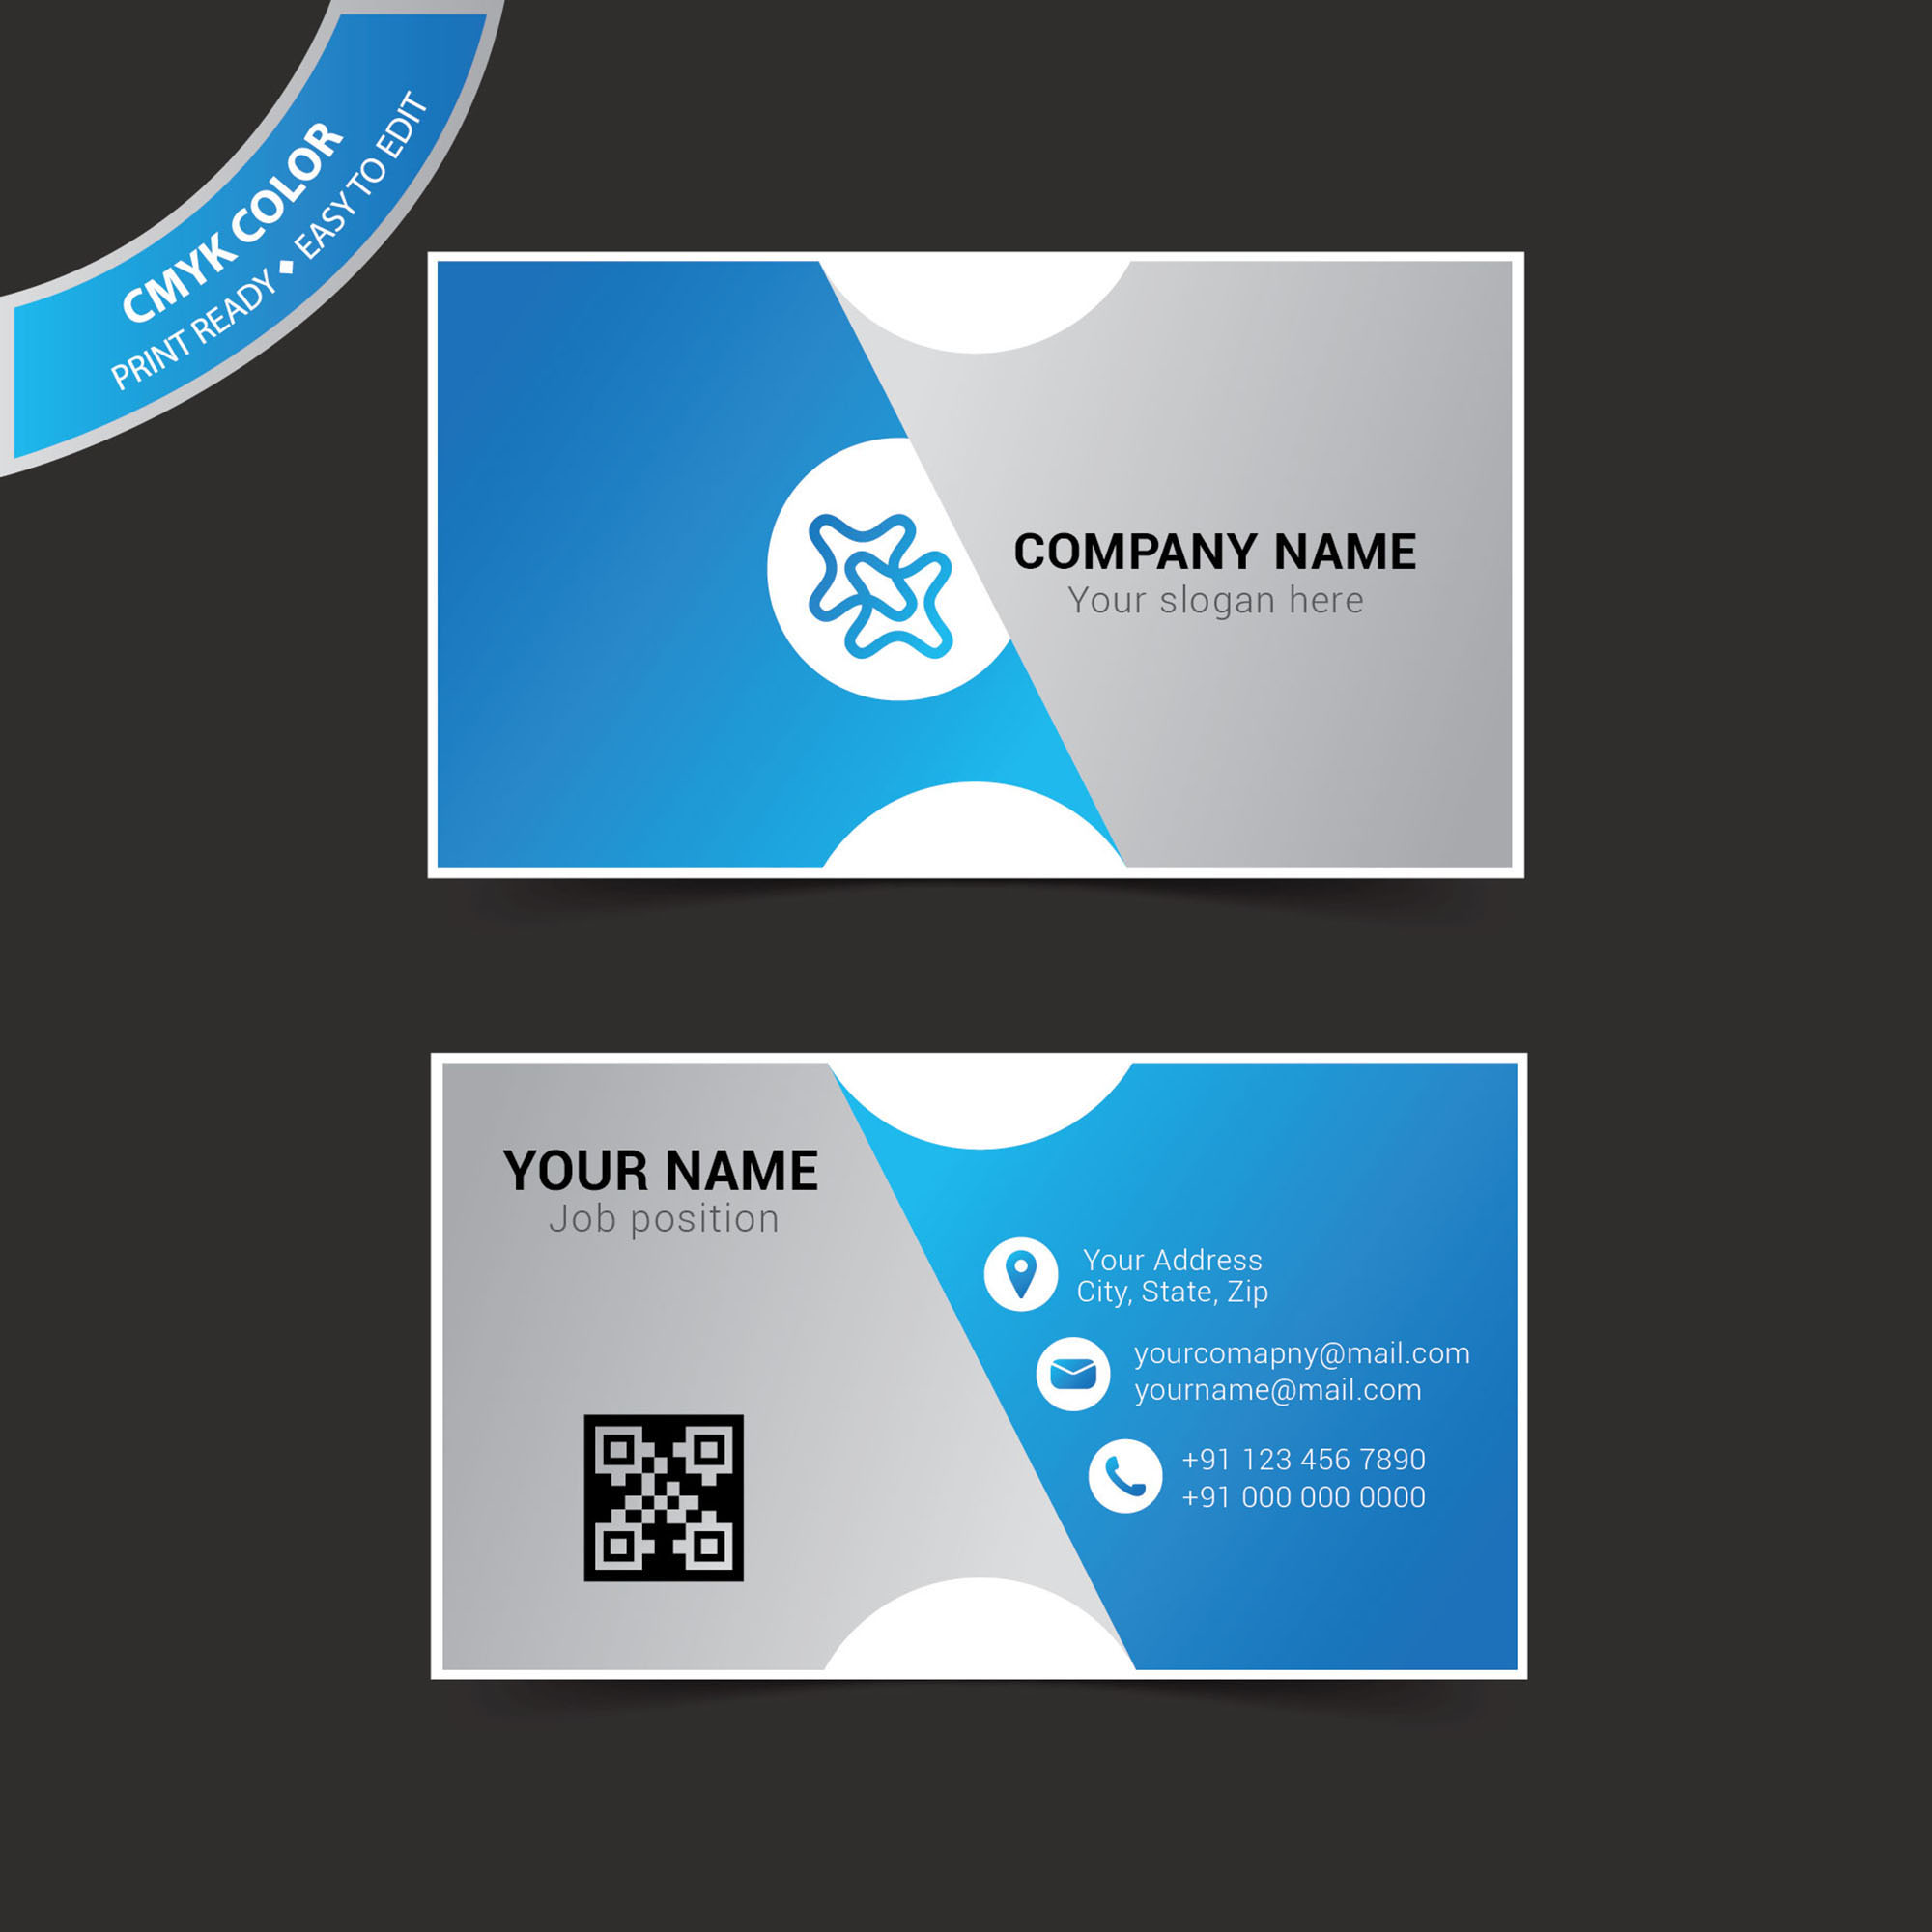 Business card template illustrator free vector wisxi abstract business card design business creative graphic layout template accmission Gallery